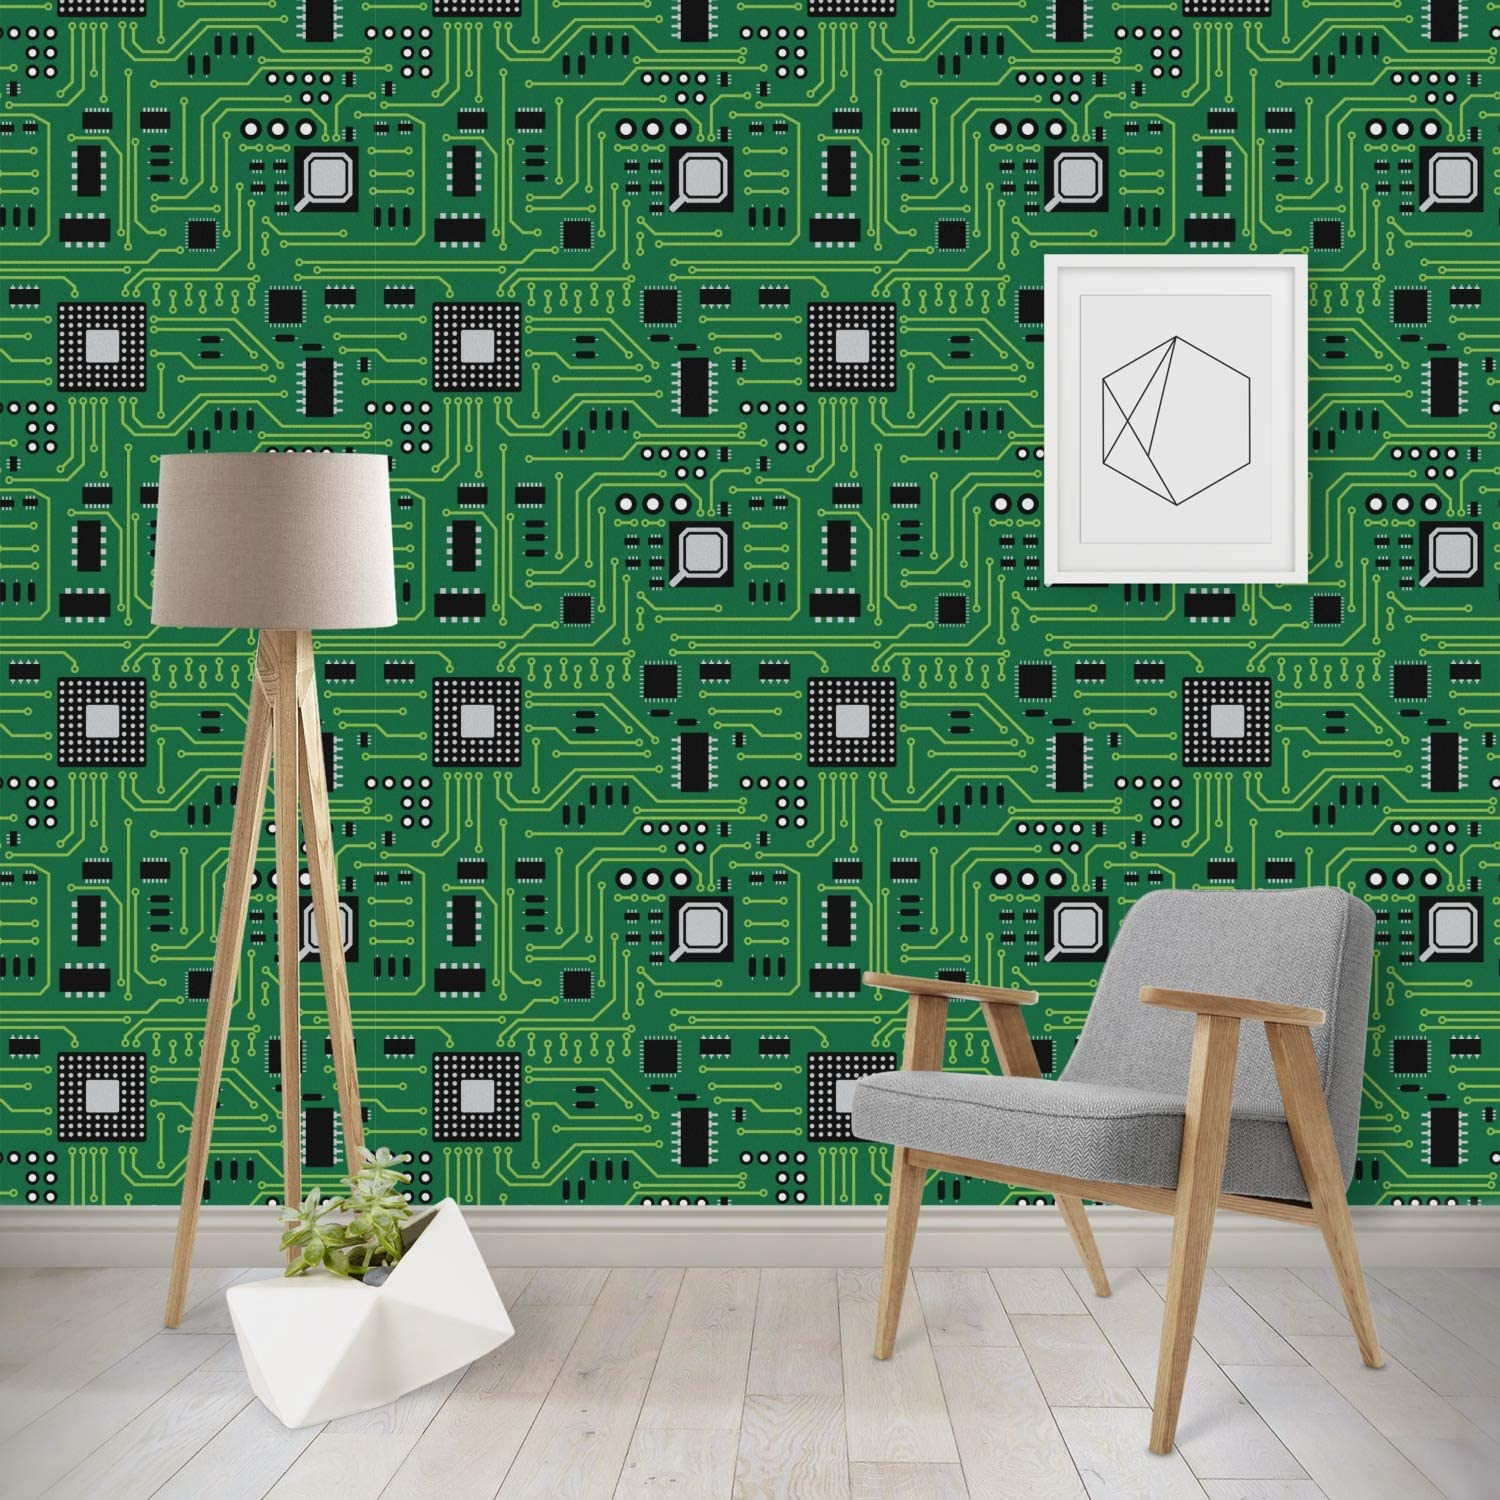 Rnk Shops Circuit Board Wallpaper Surface Covering Water